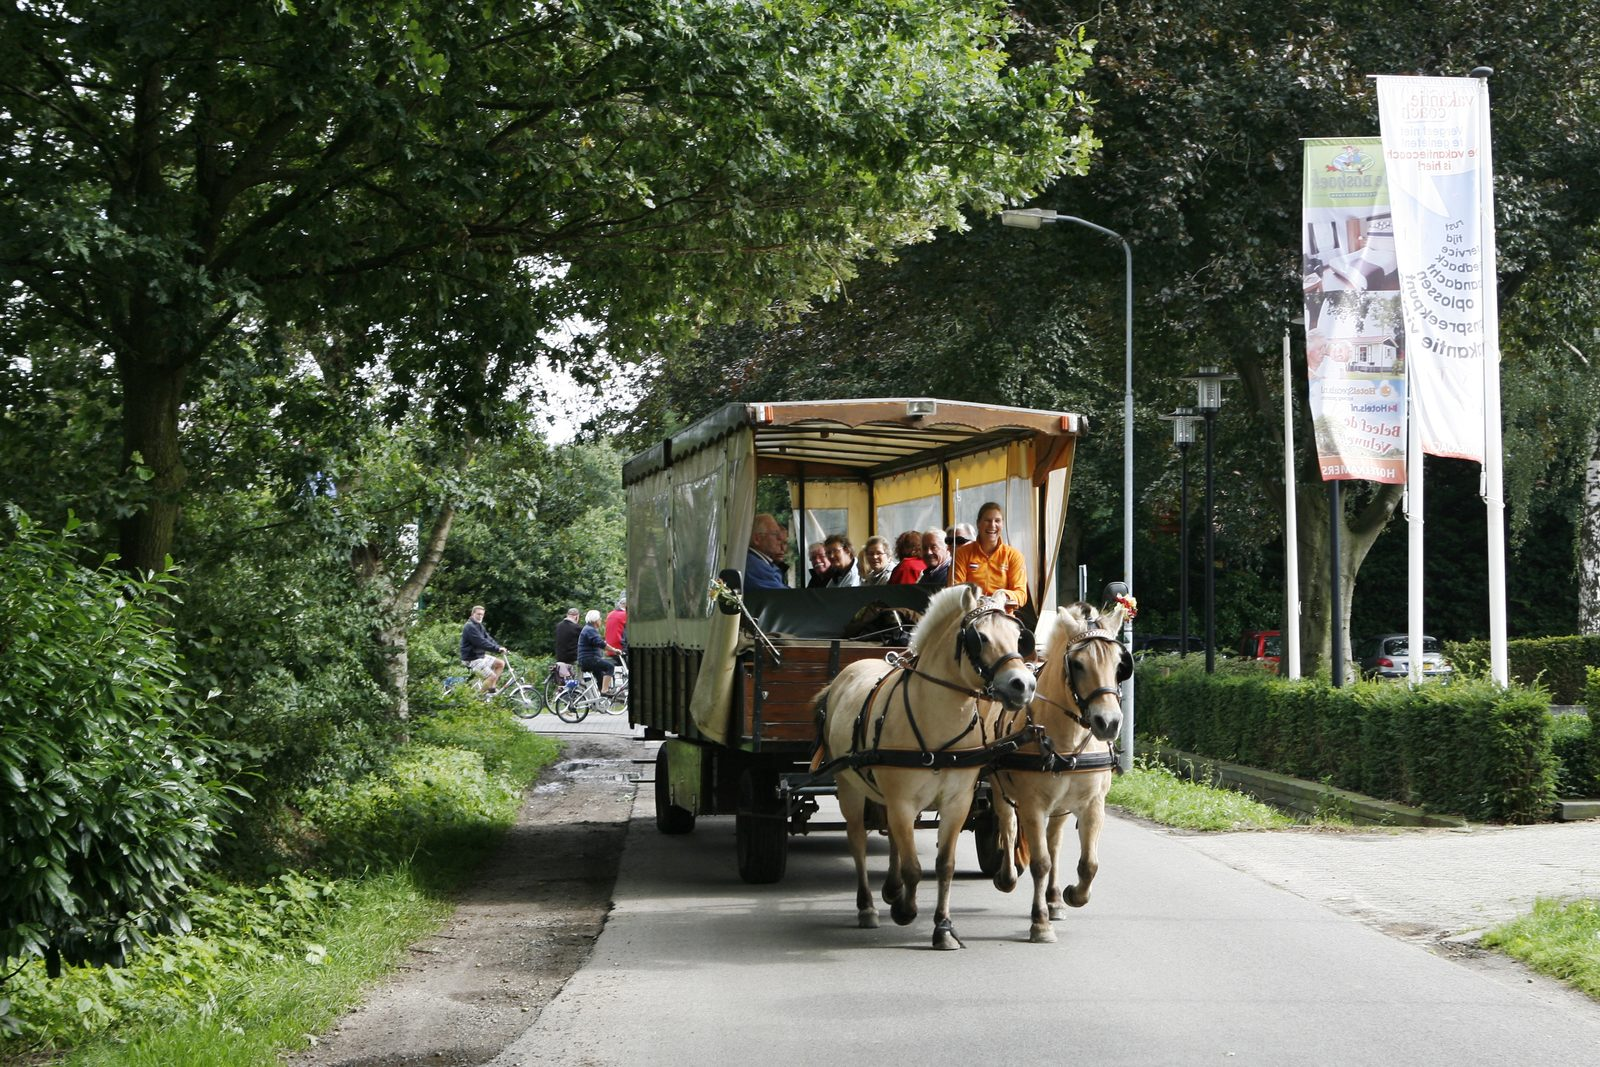 Covered wagon ride in Voorthuizen